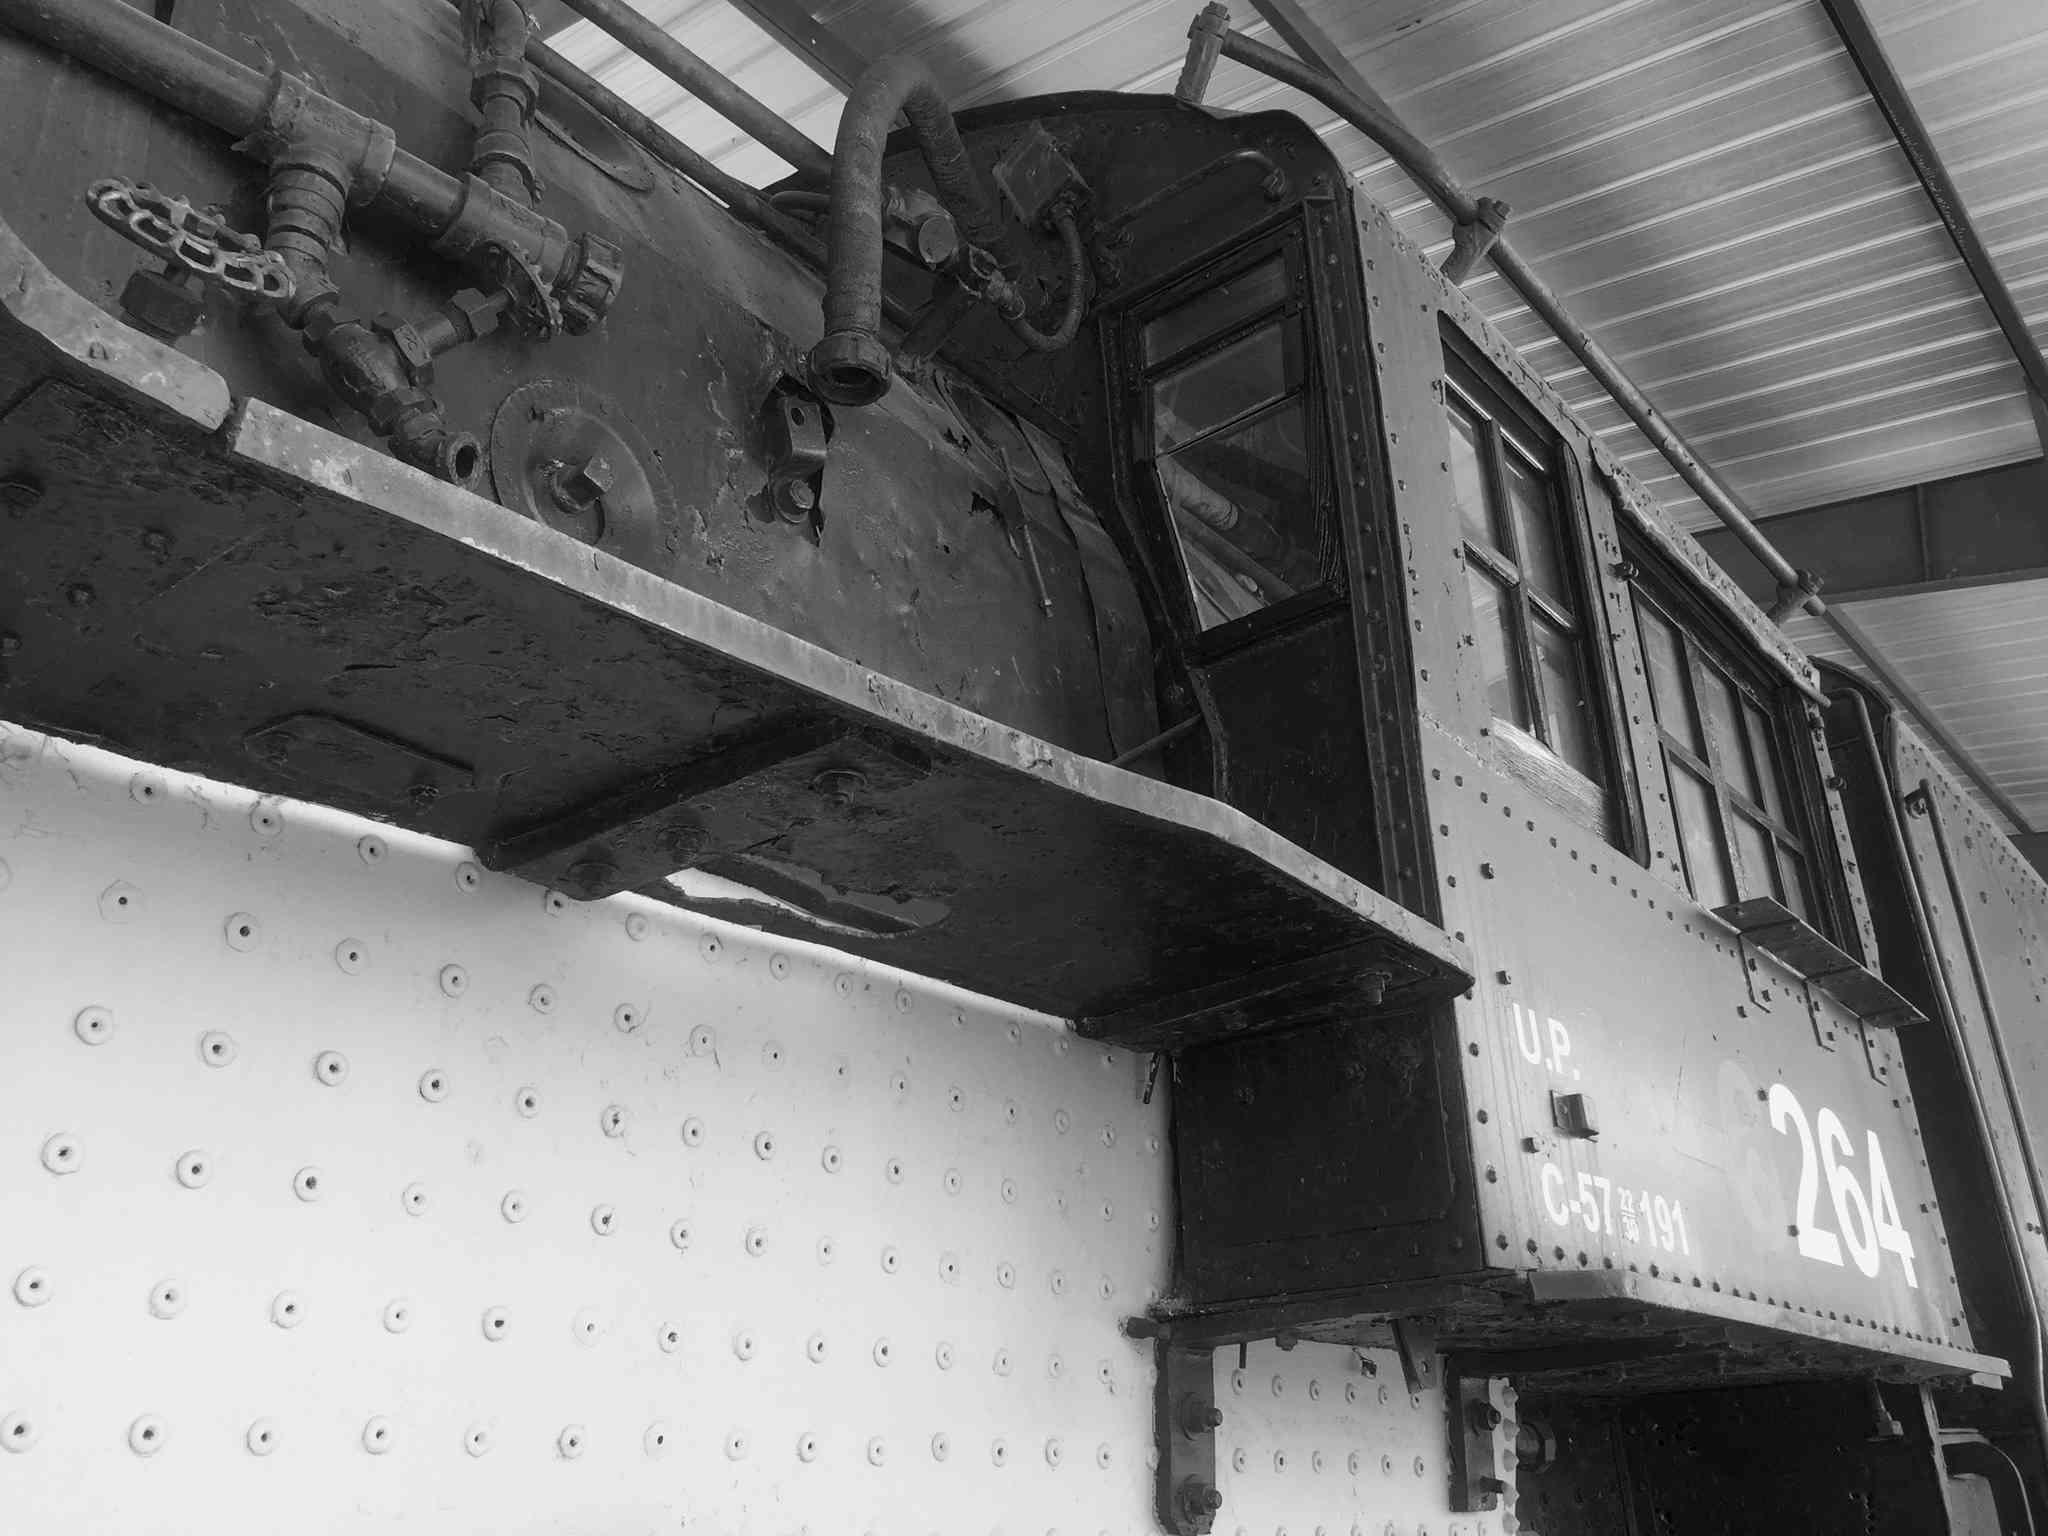 Train In Shed At Nevada State Railroad Museum